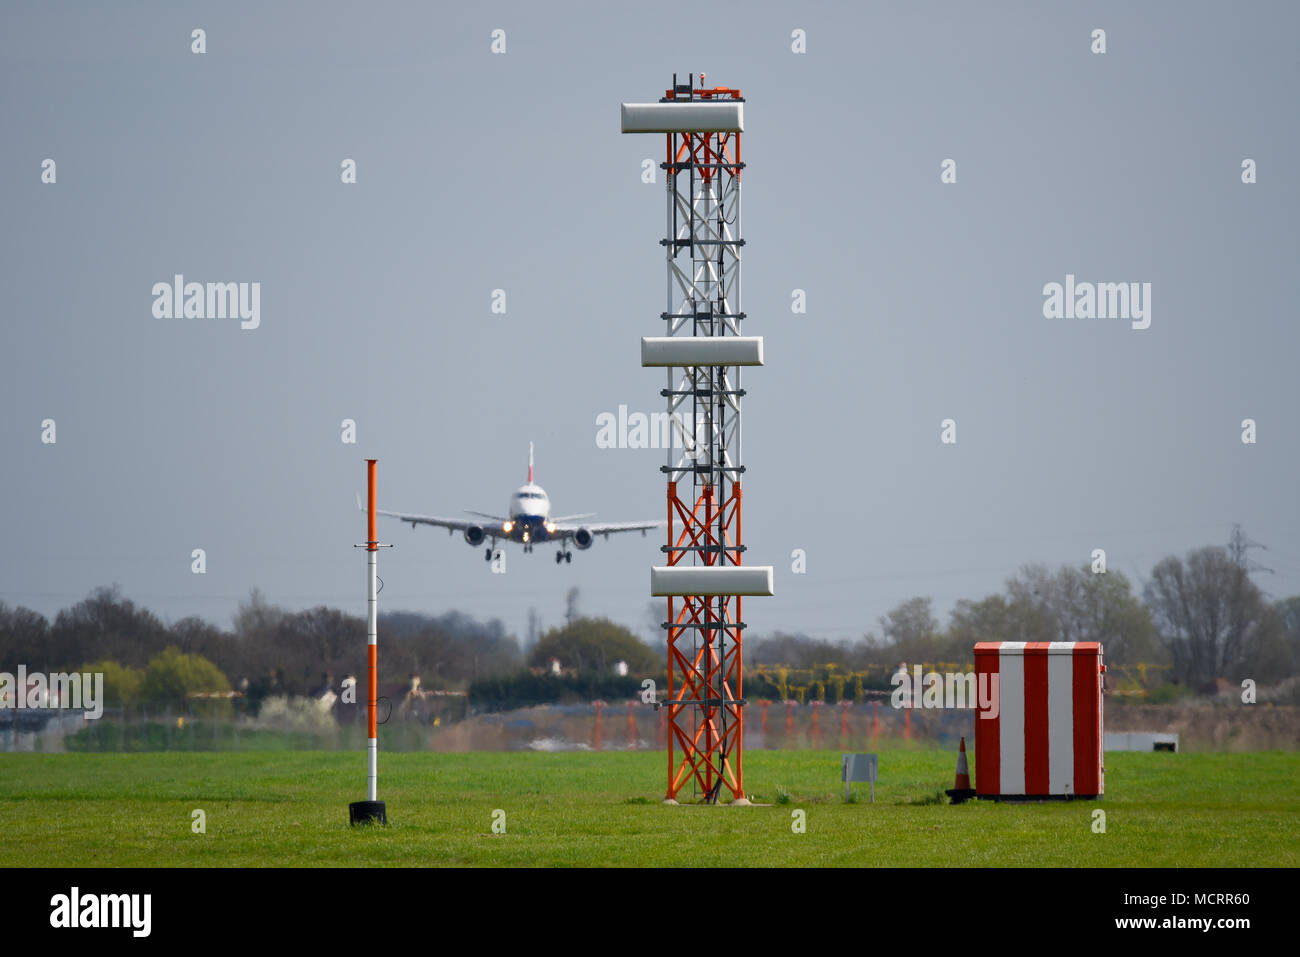 ILS Glide slope tower landing system at London Southend Airport. infrastructure. With British Airways Embraer jet plane side slipping in to land - Stock Image